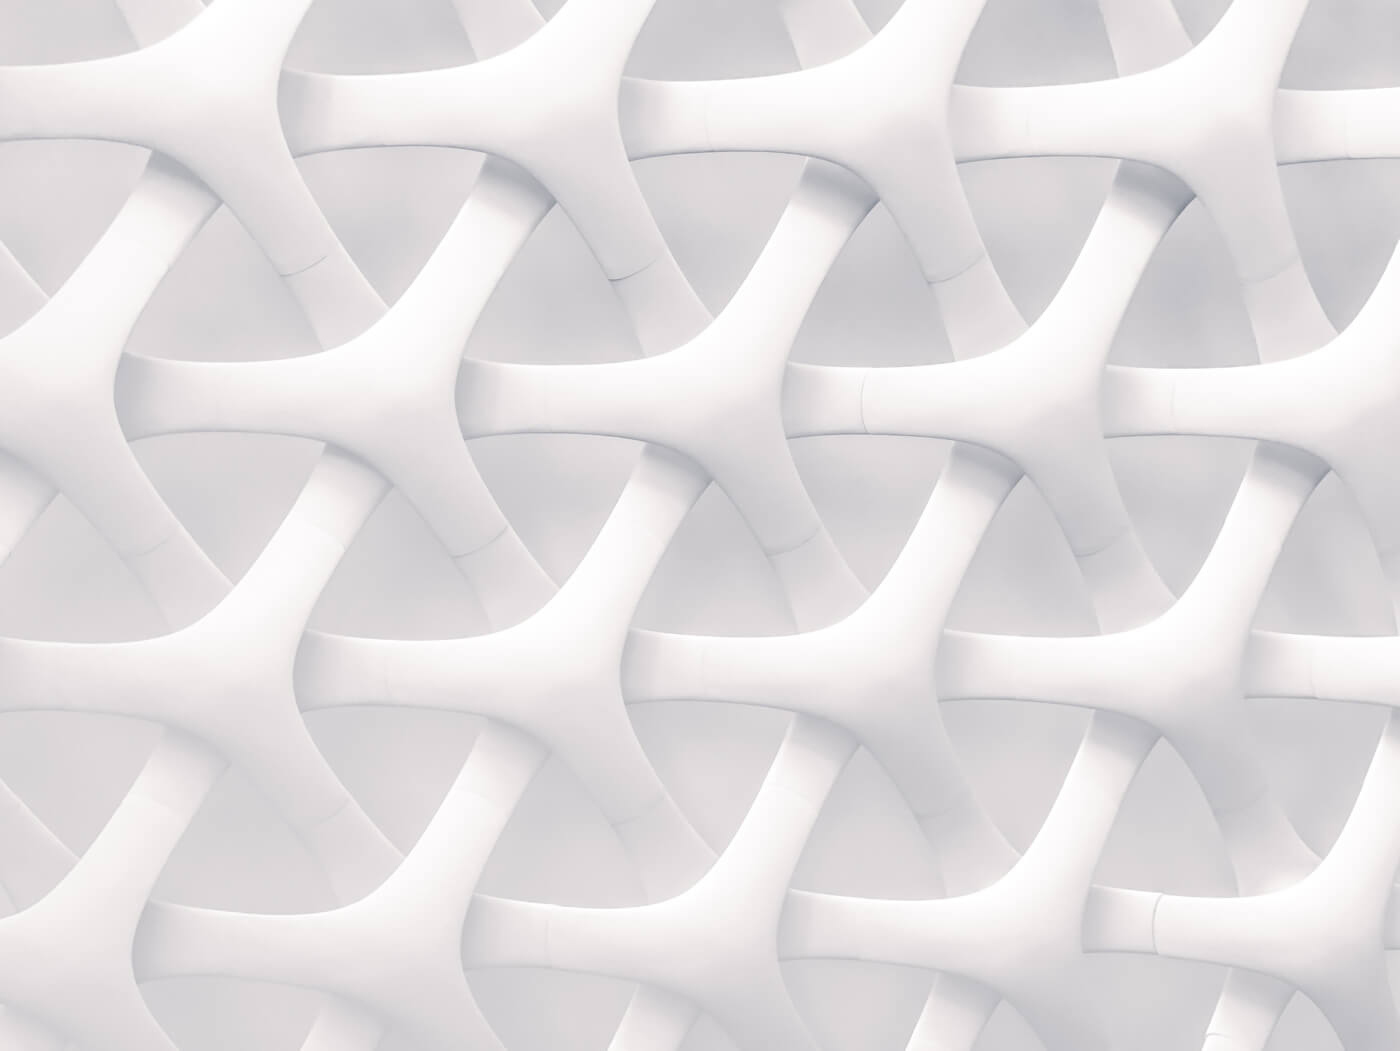 a white woven structure